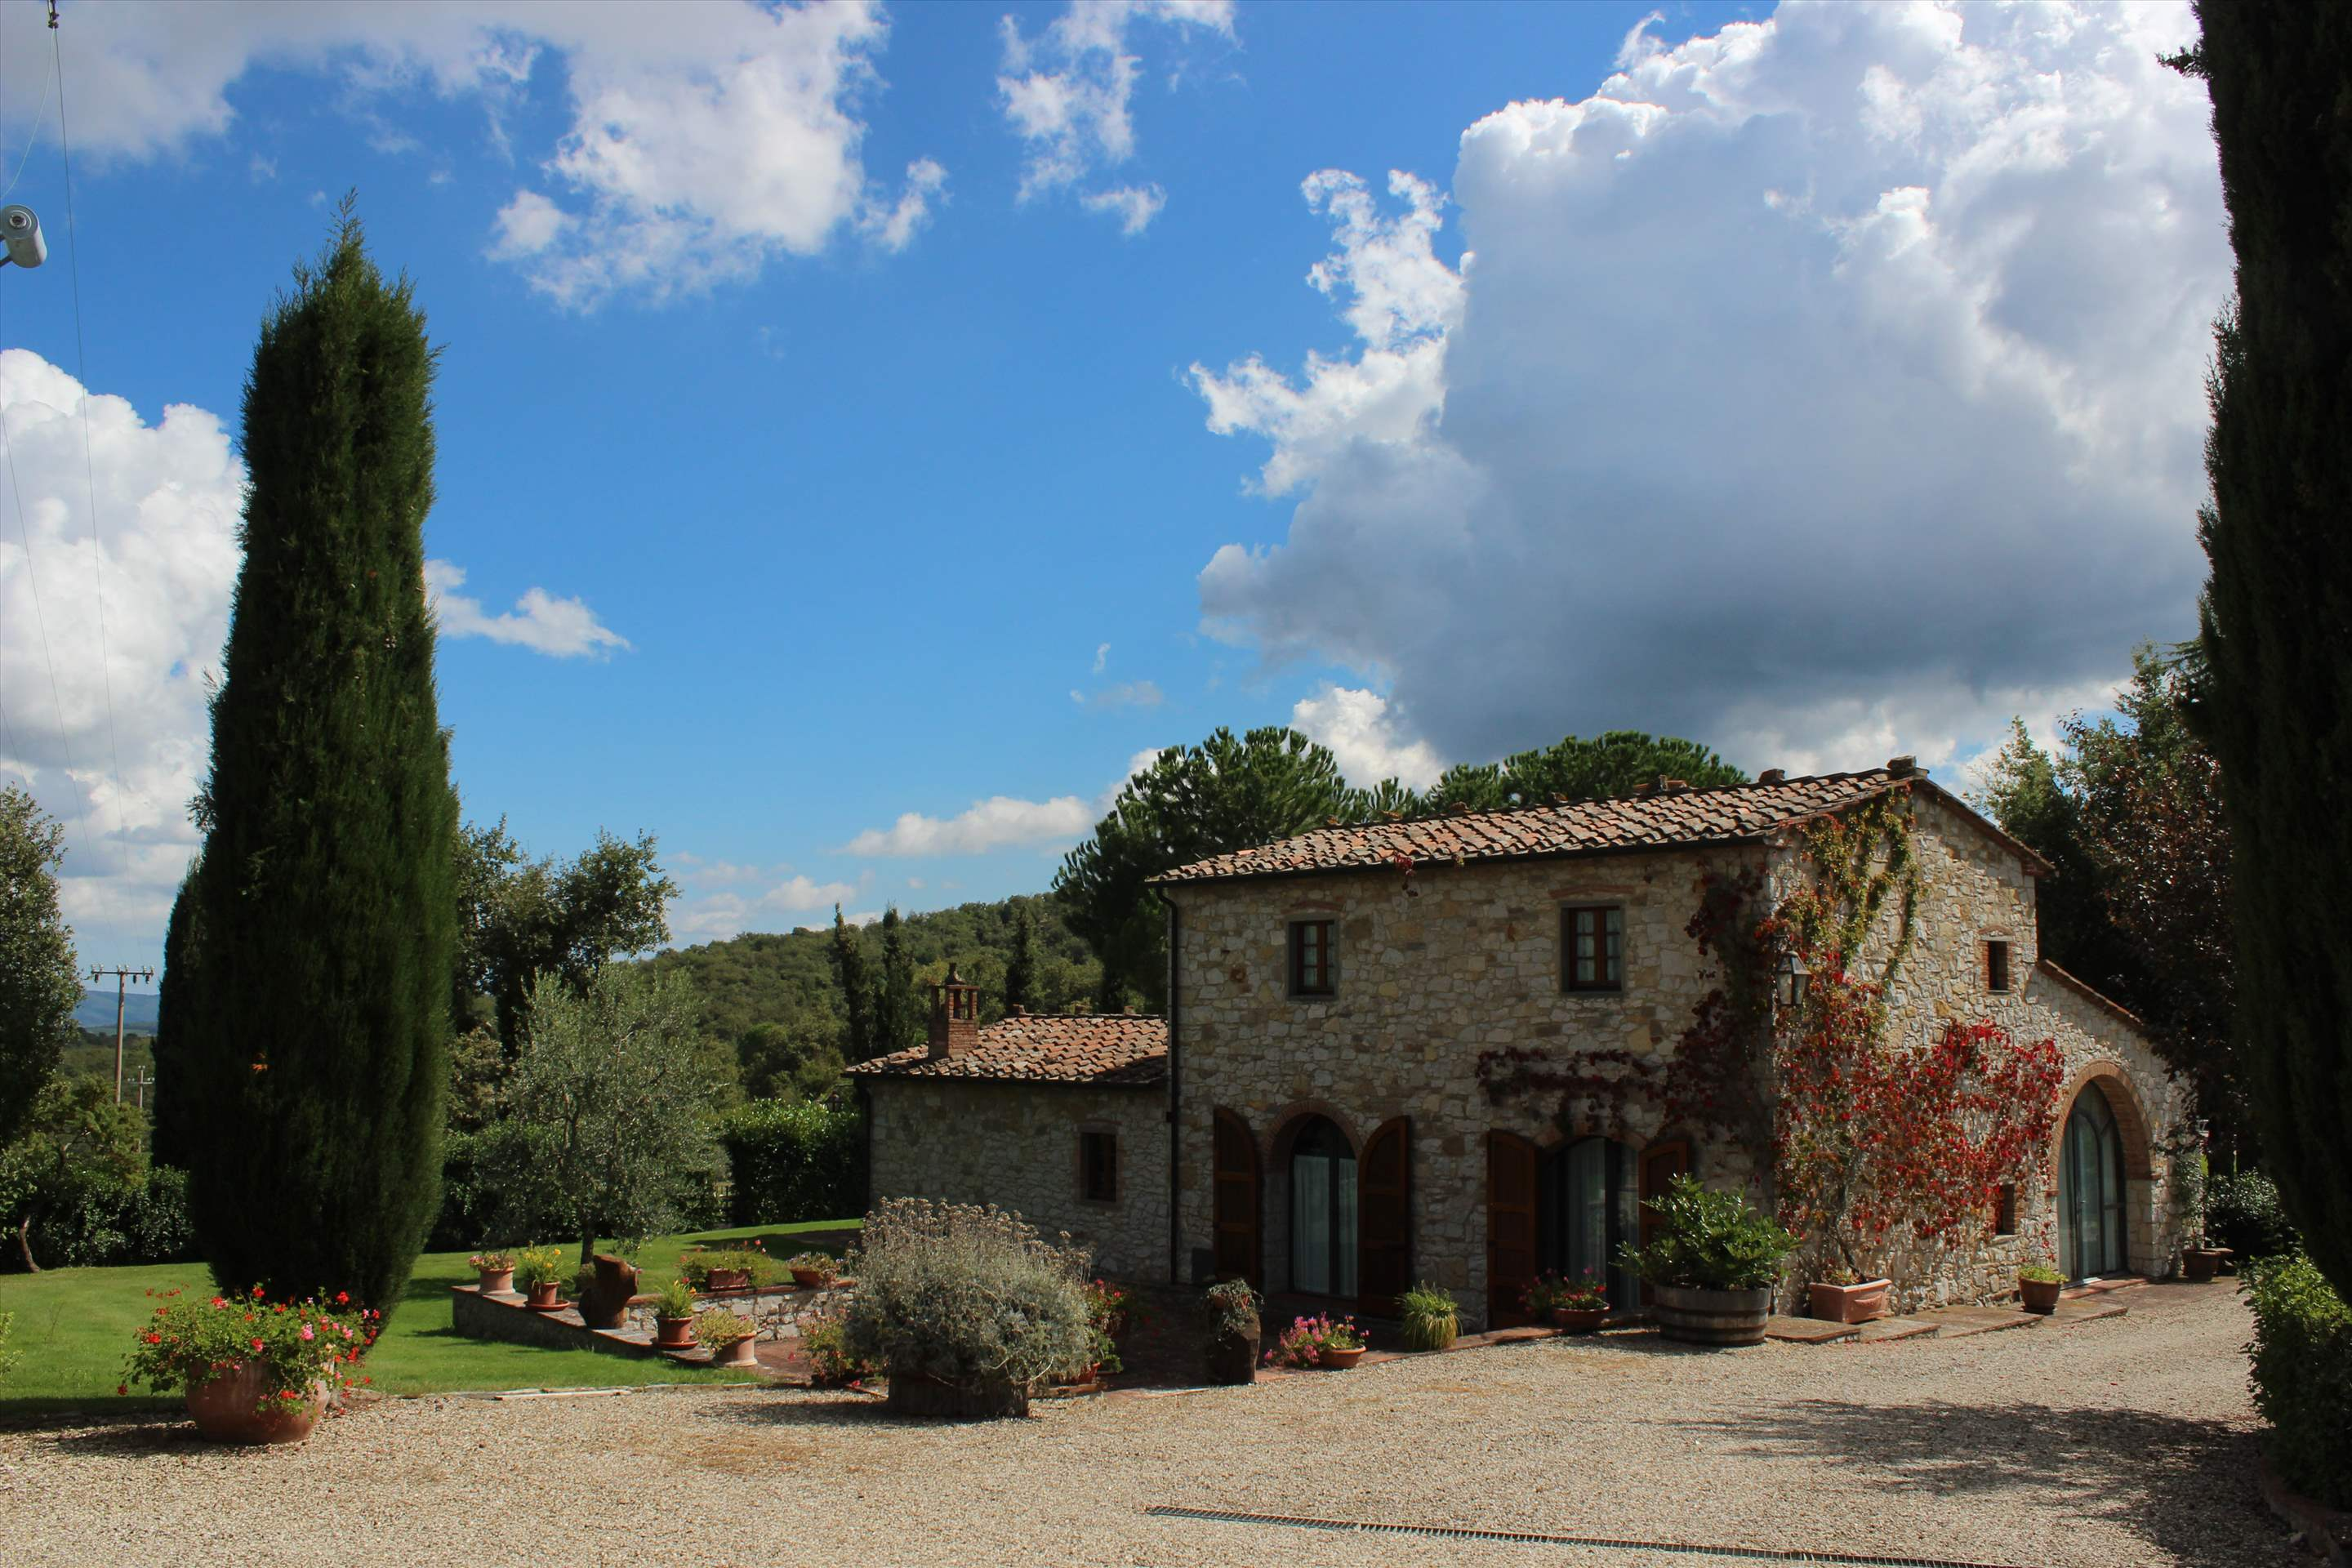 Villa Floriana, 4 bedroom villa in Chianti & Countryside, Tuscany Photo #11